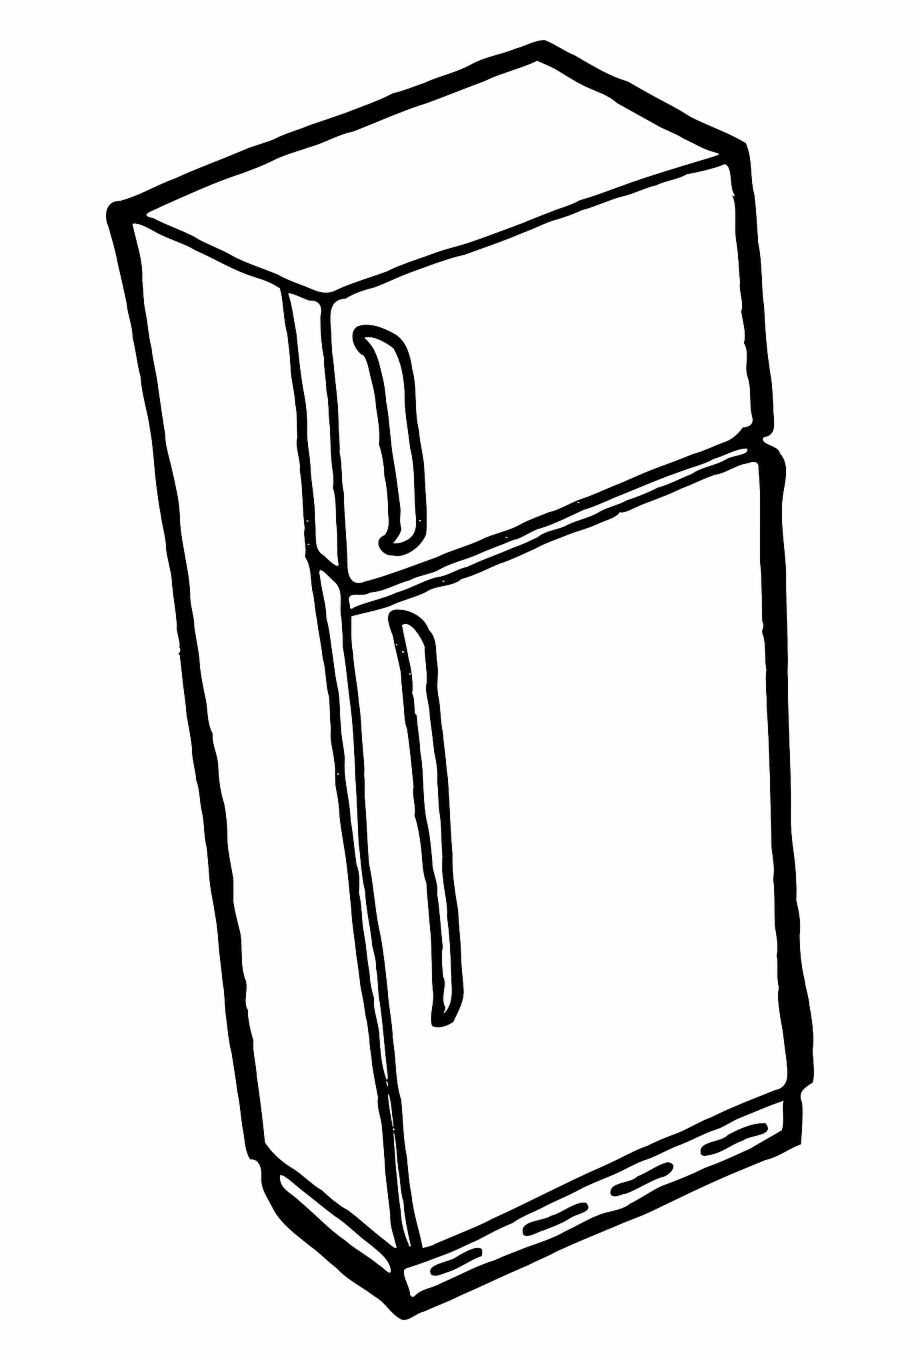 User taking picture of refrigerator clipart png black and white Refrigerator Fridge Freezer Cold Png Image - Refrigerator ... black and white